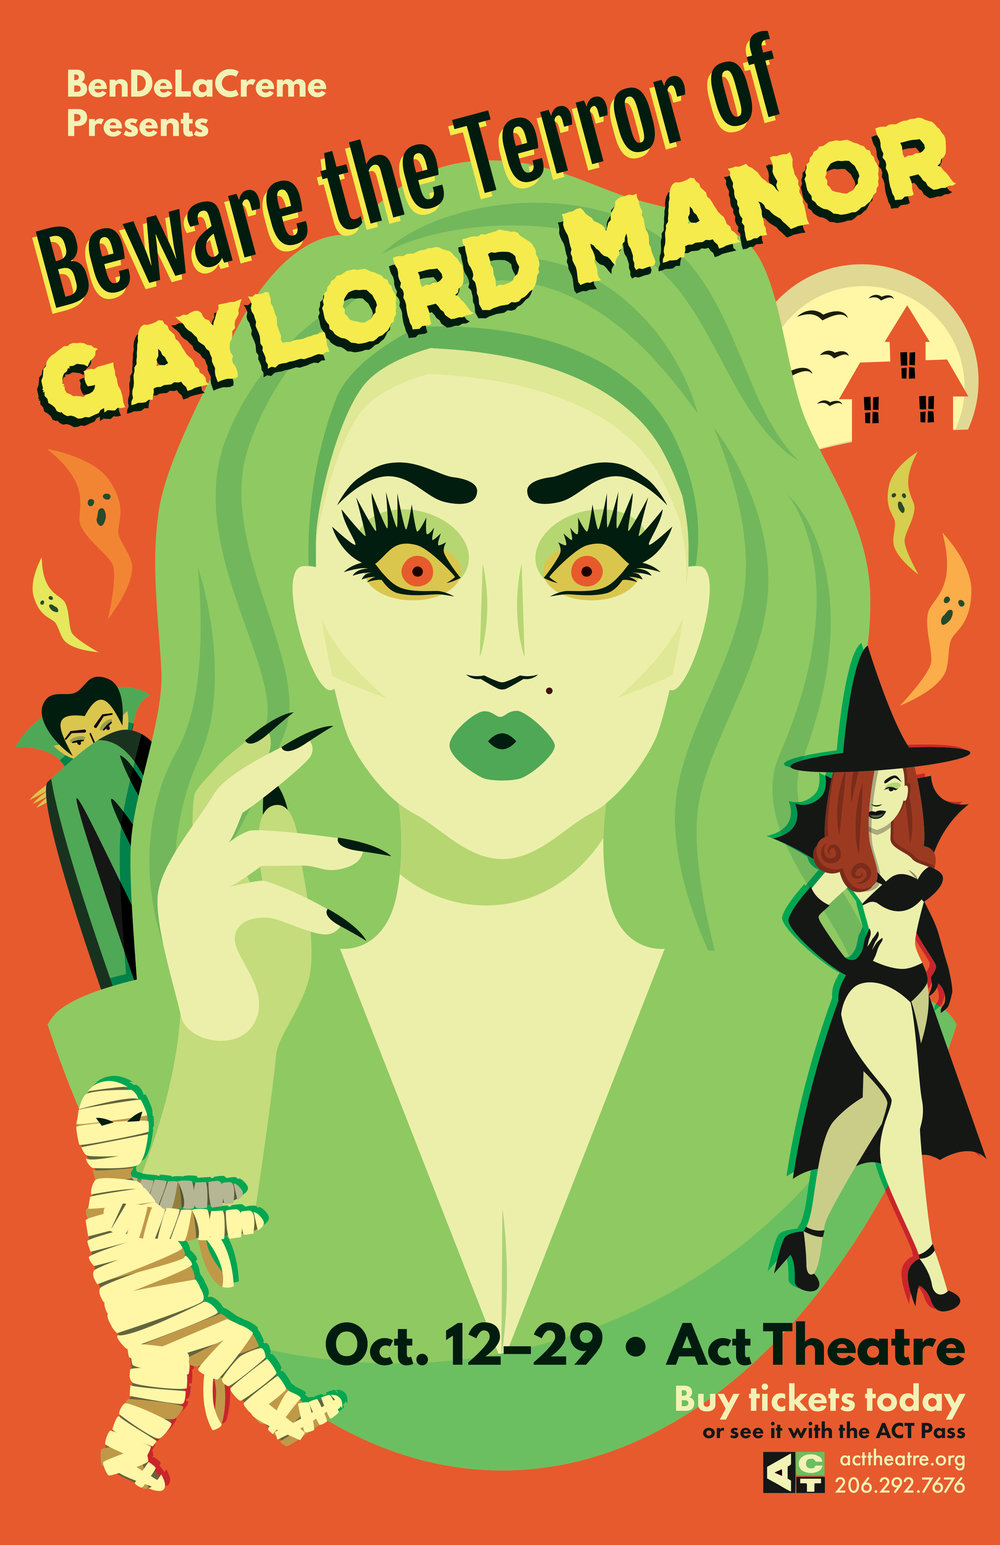 Poster re-design for Beware the Terror of Gaylord Manor at the Act Theatre.